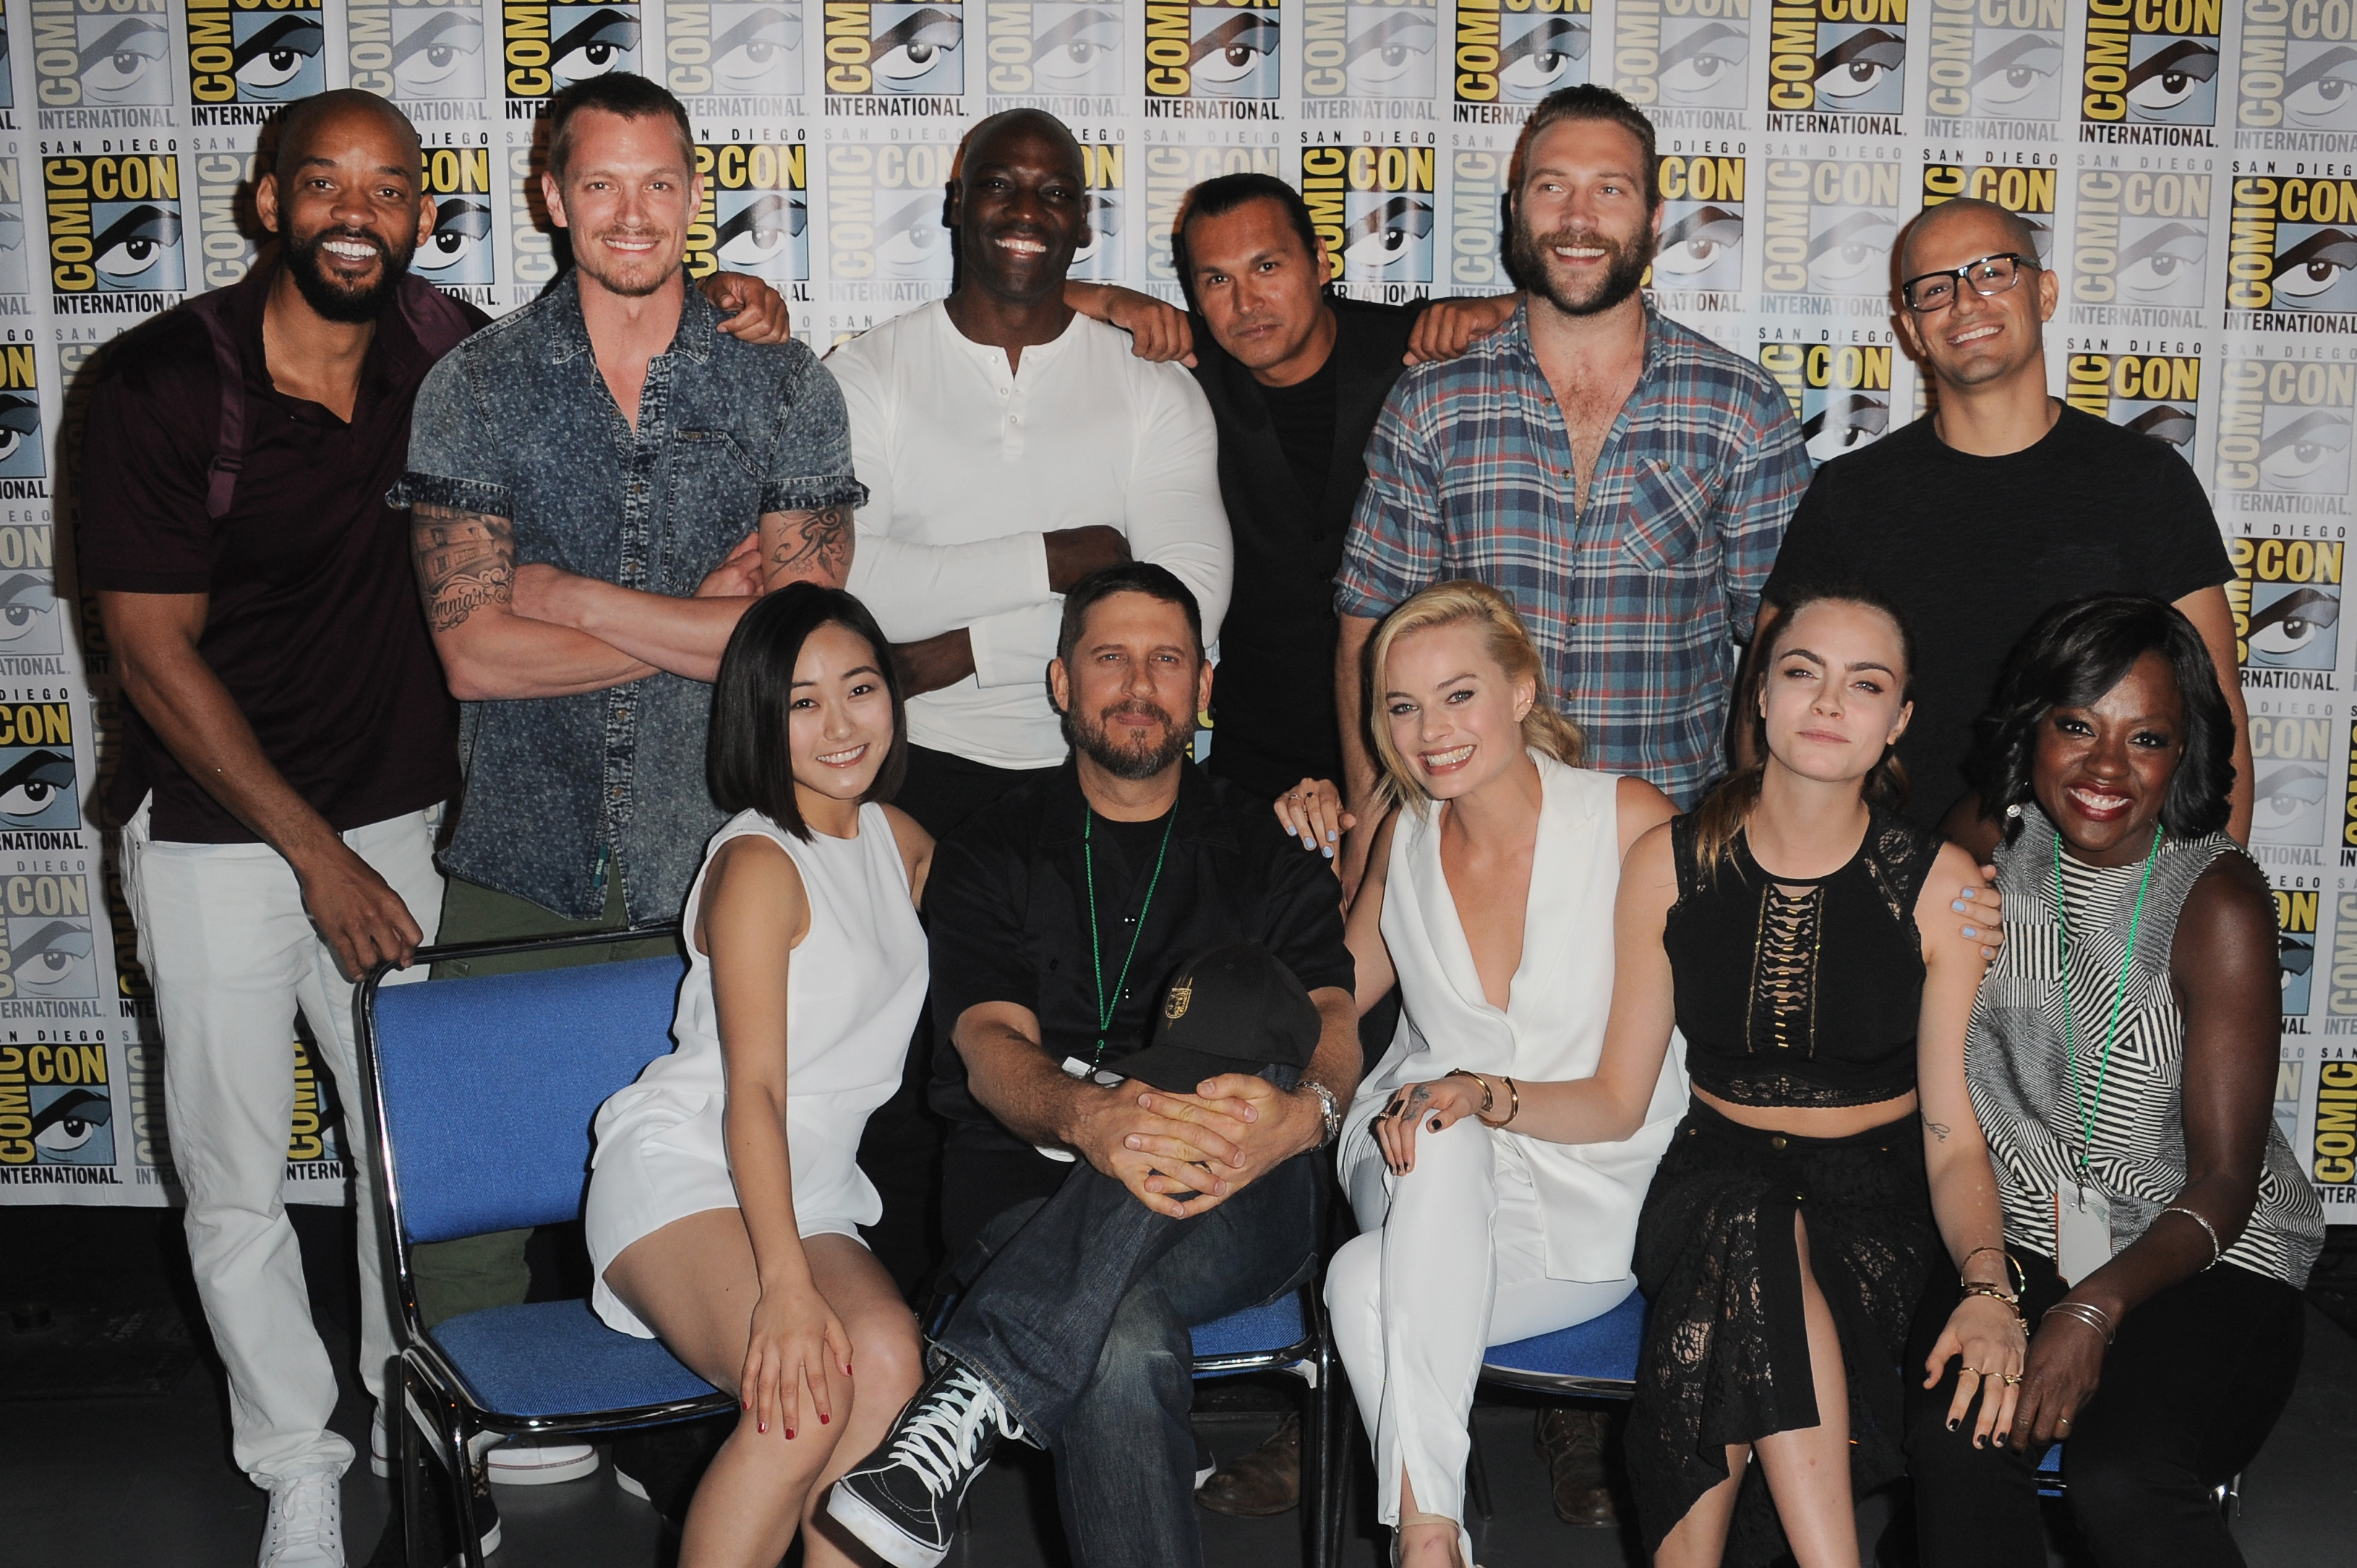 'Suicide Squad' presentation during Comic-Con International 2015 in San Diego, Calif. on July 11, 2015.